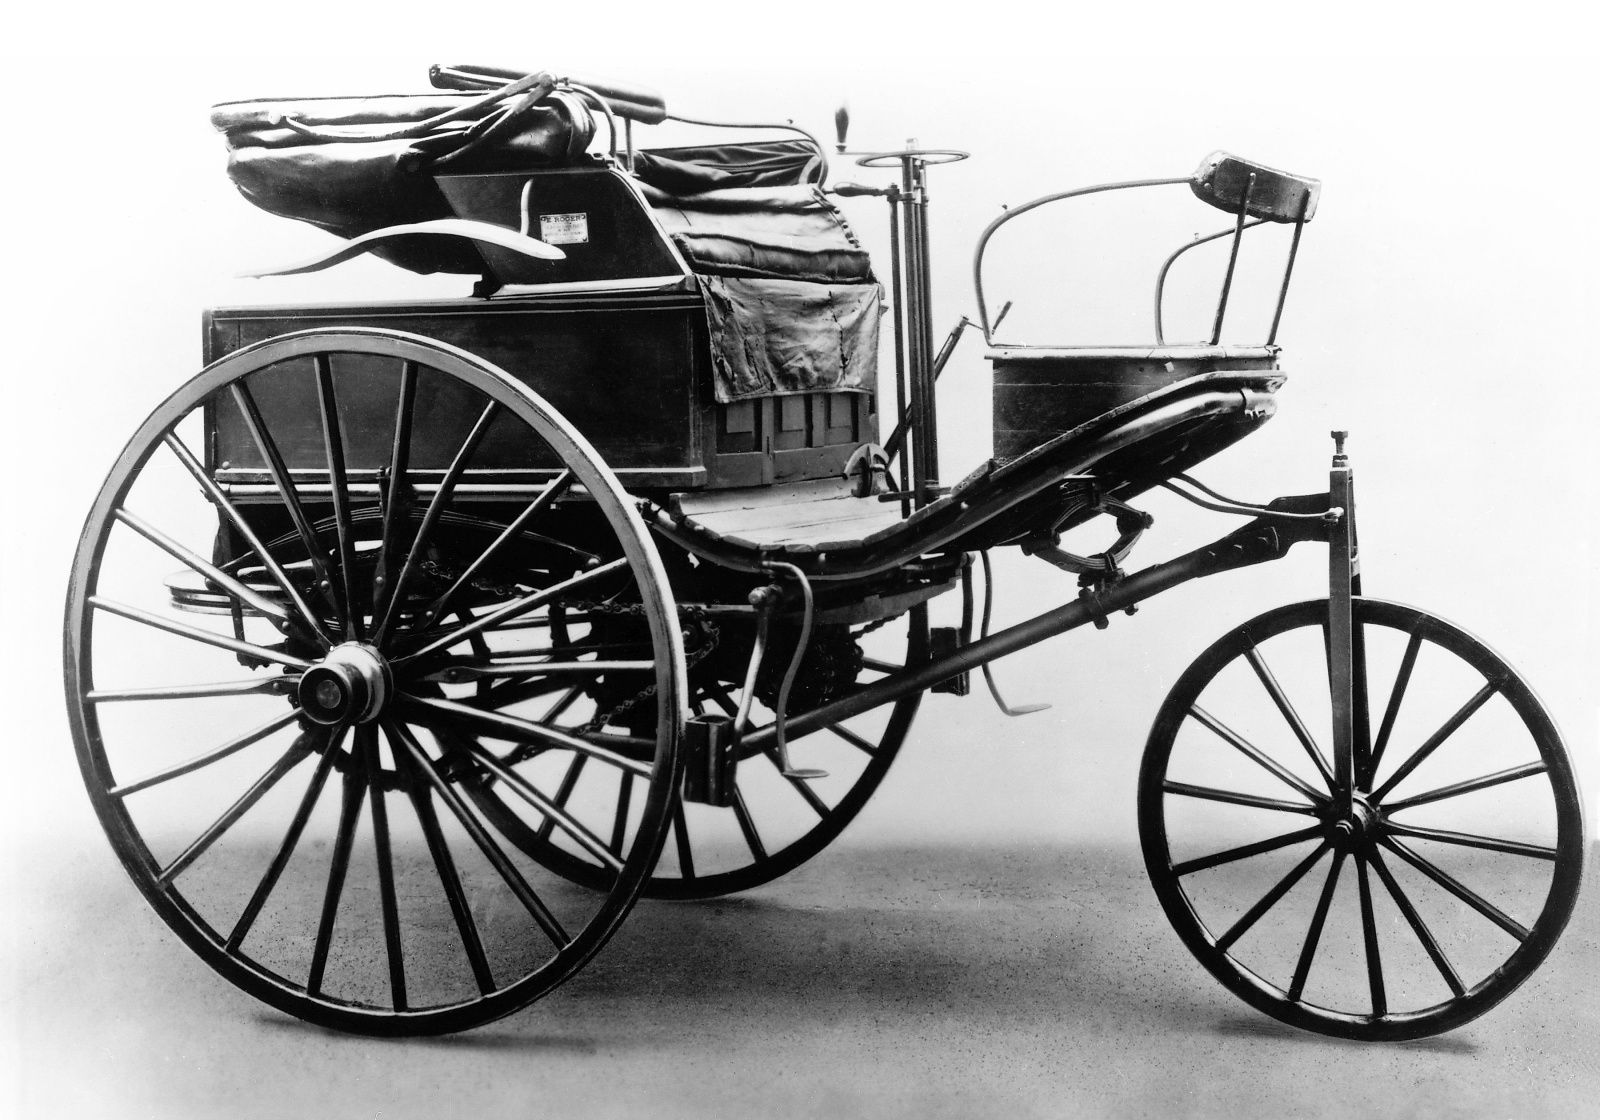 Carl Benz Patent Motor Car 1888 his first one, his wife drove this ...